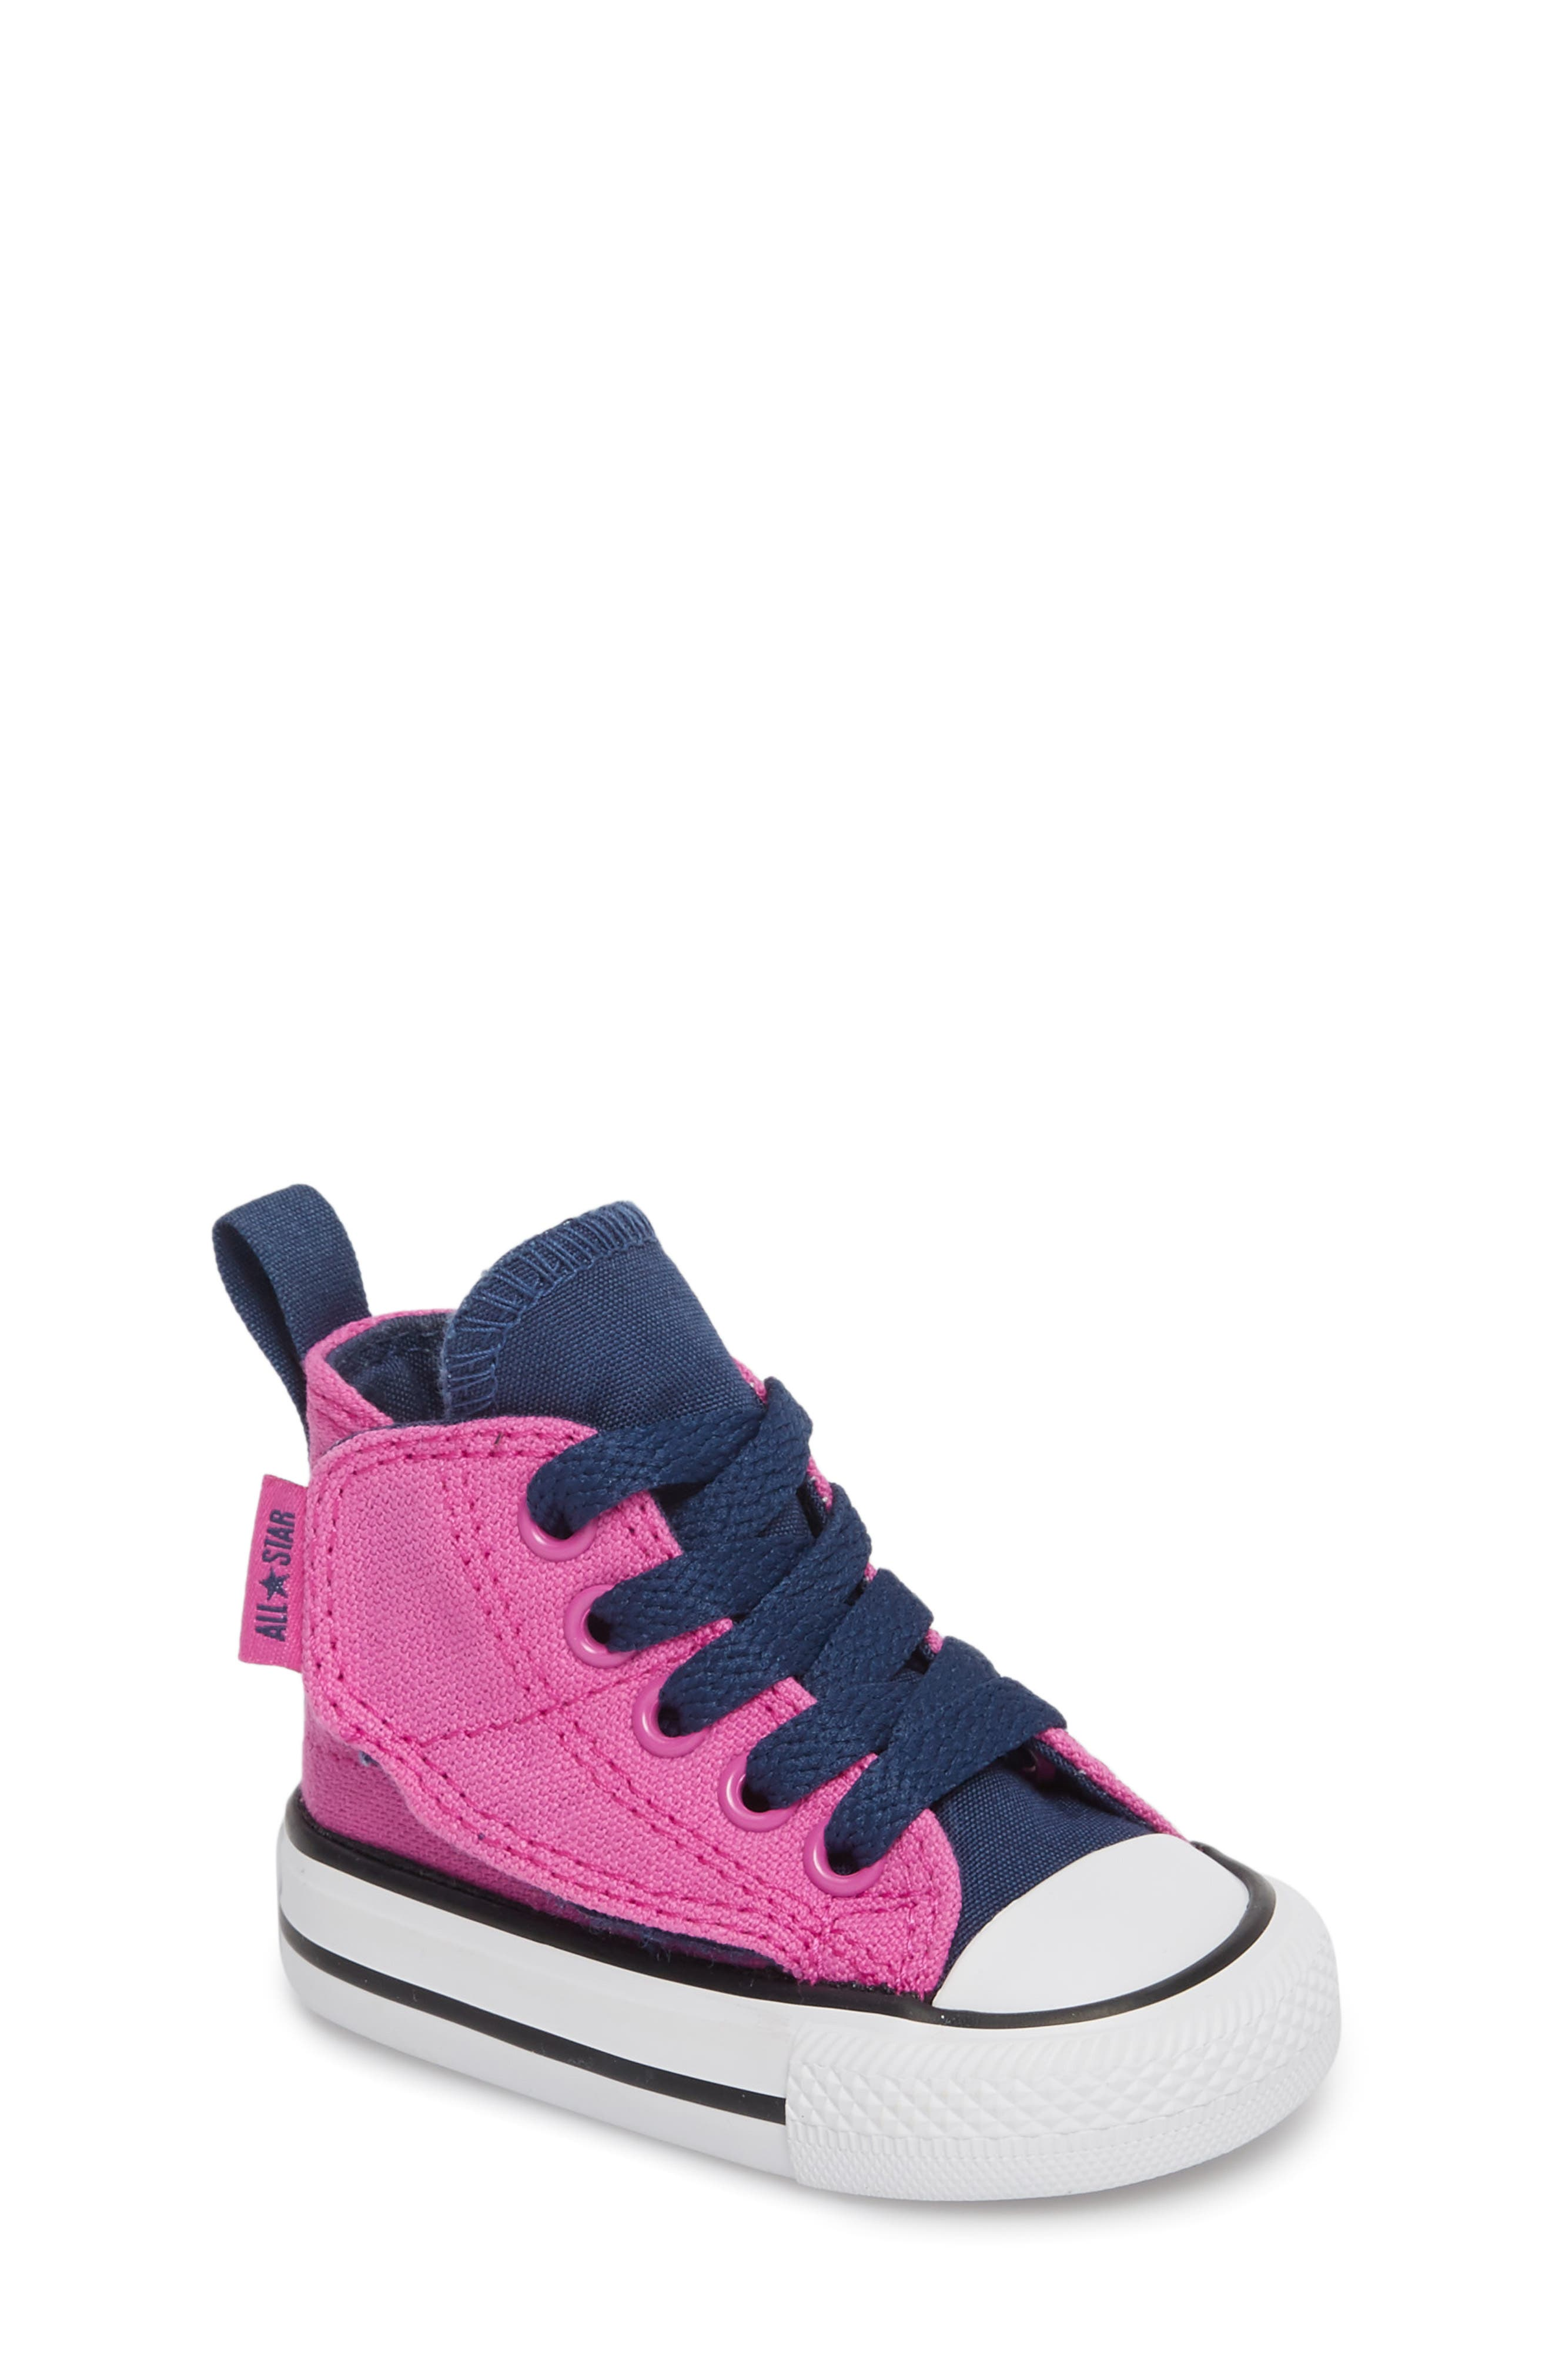 Alternate Image 1 Selected - Converse Chuck Taylor® All Star® 'Simple Step' High Top Sneaker (Baby, Walker & Toddler)